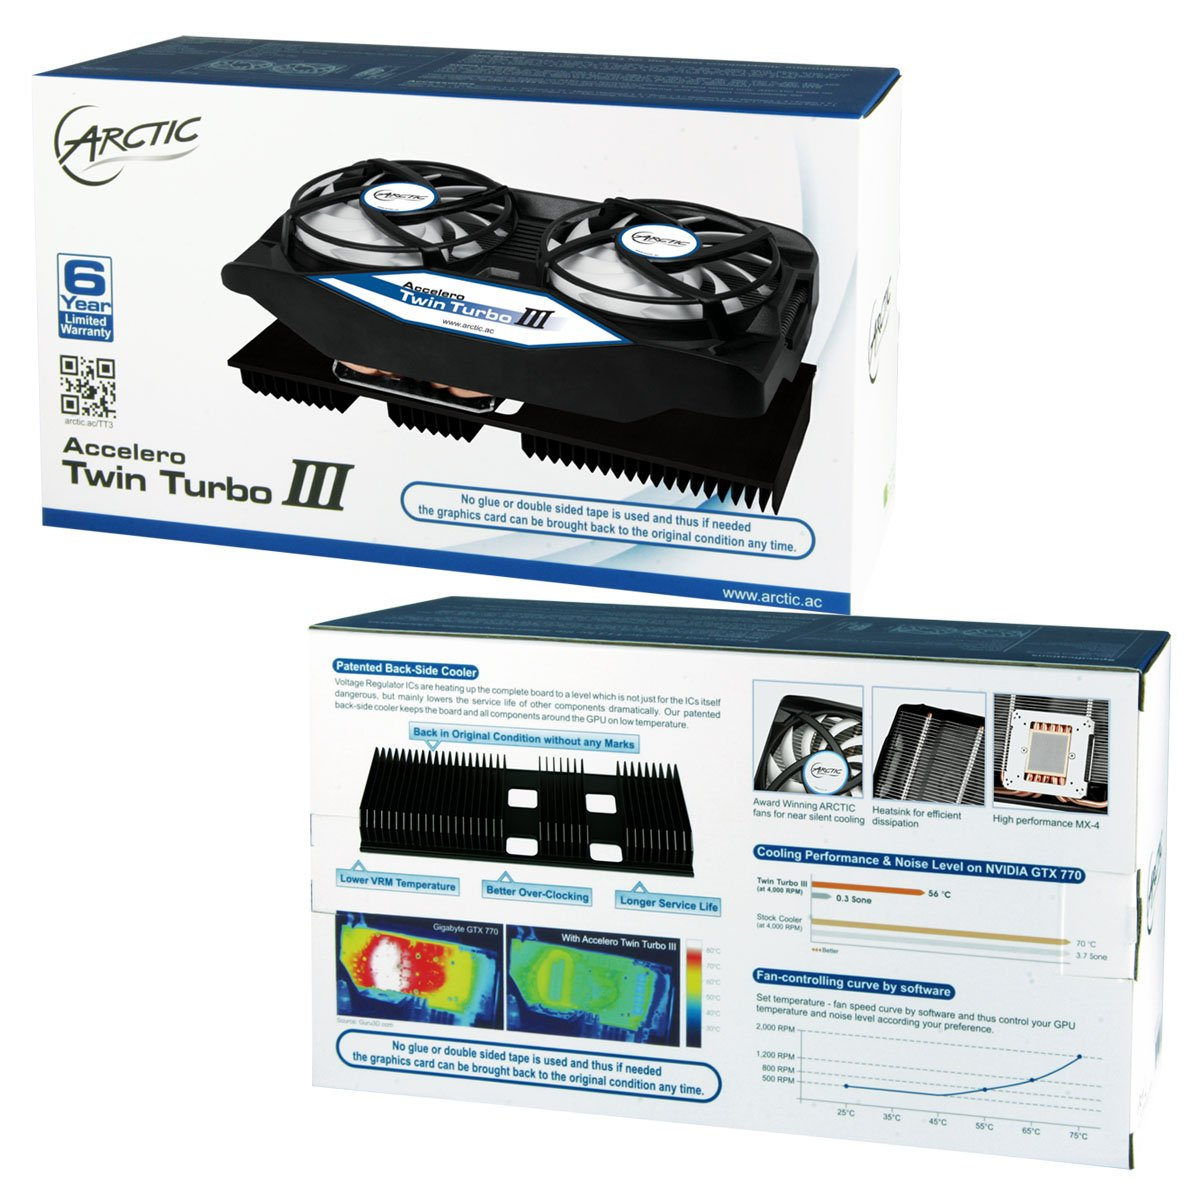 ARCTIC Accelero Twin Turbo III Graphics Card Cooler with Backside Cooler for Efficient RAM, VRM Cooling and VGA Cooler DCACO-V820001-GBA01 by ARCTIC (Image #9)